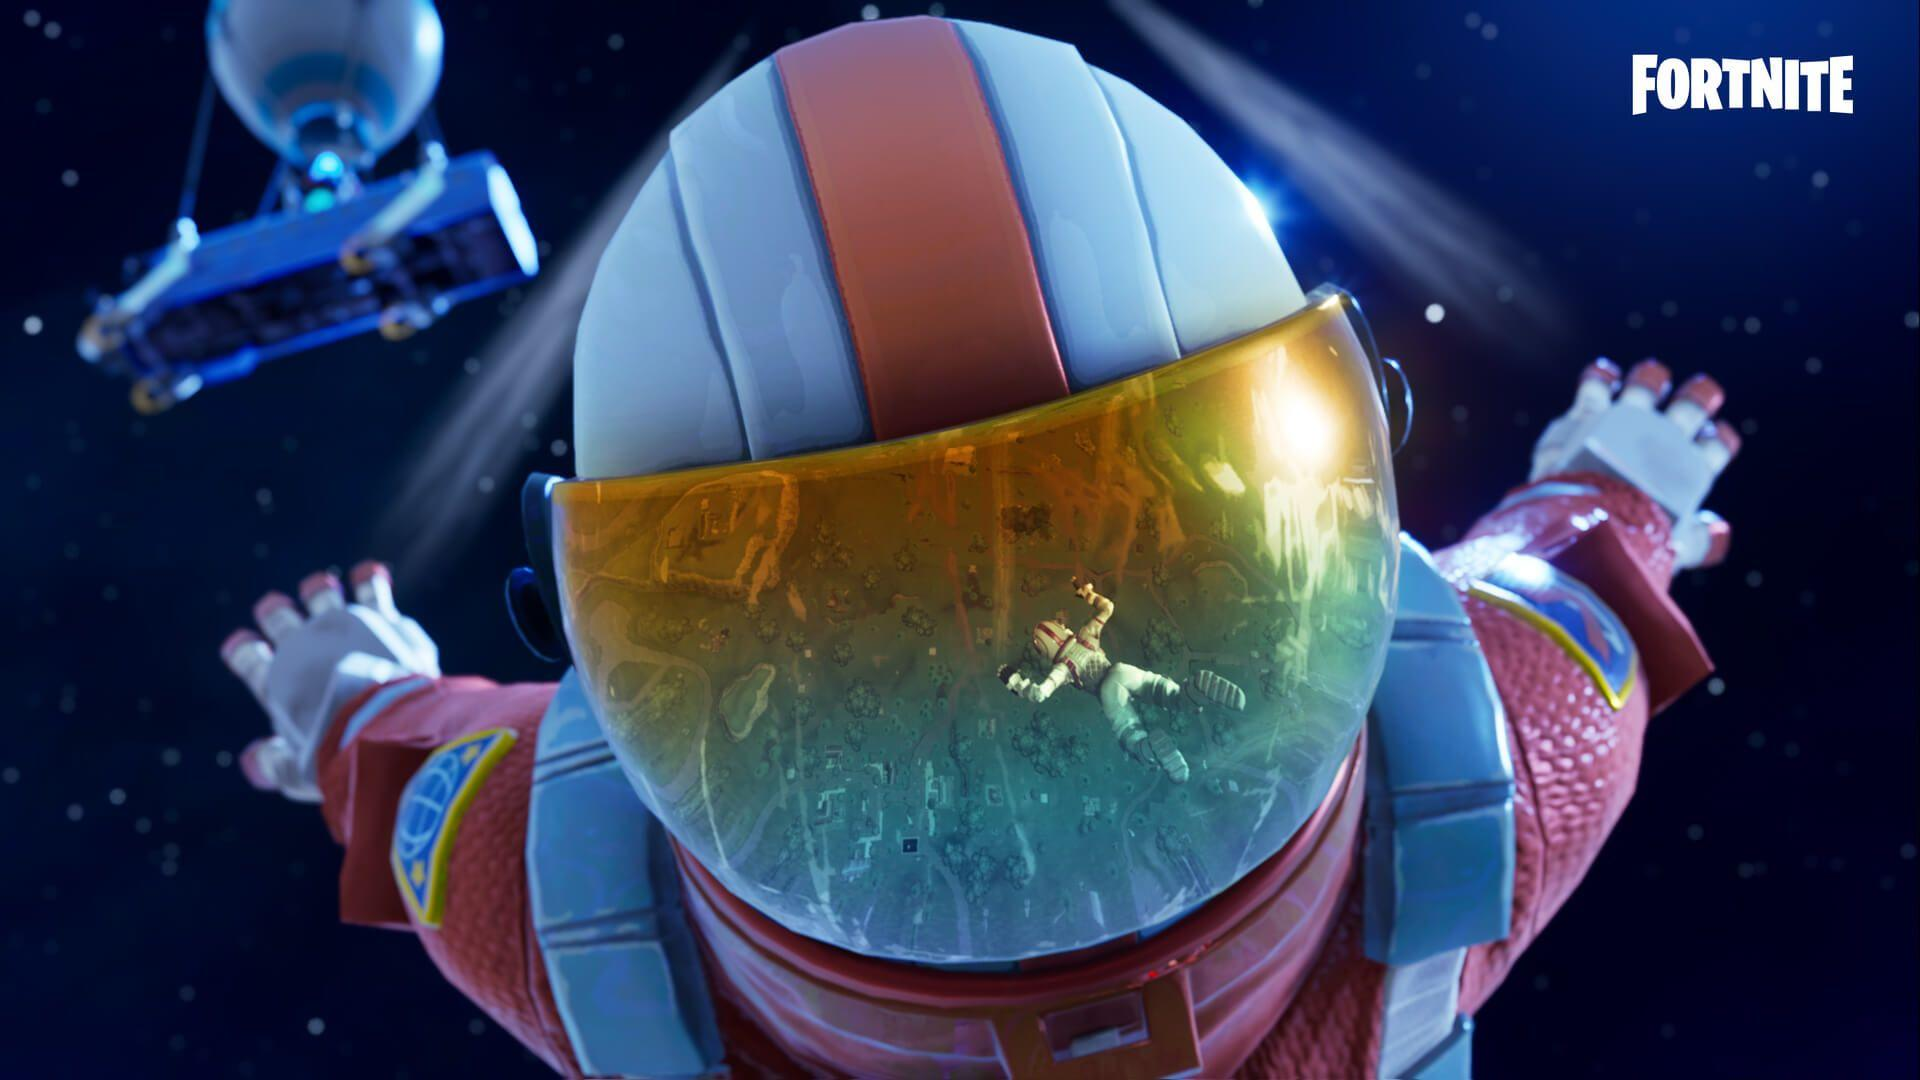 Fortnite Battle Royale Season 3 Update is Now Live